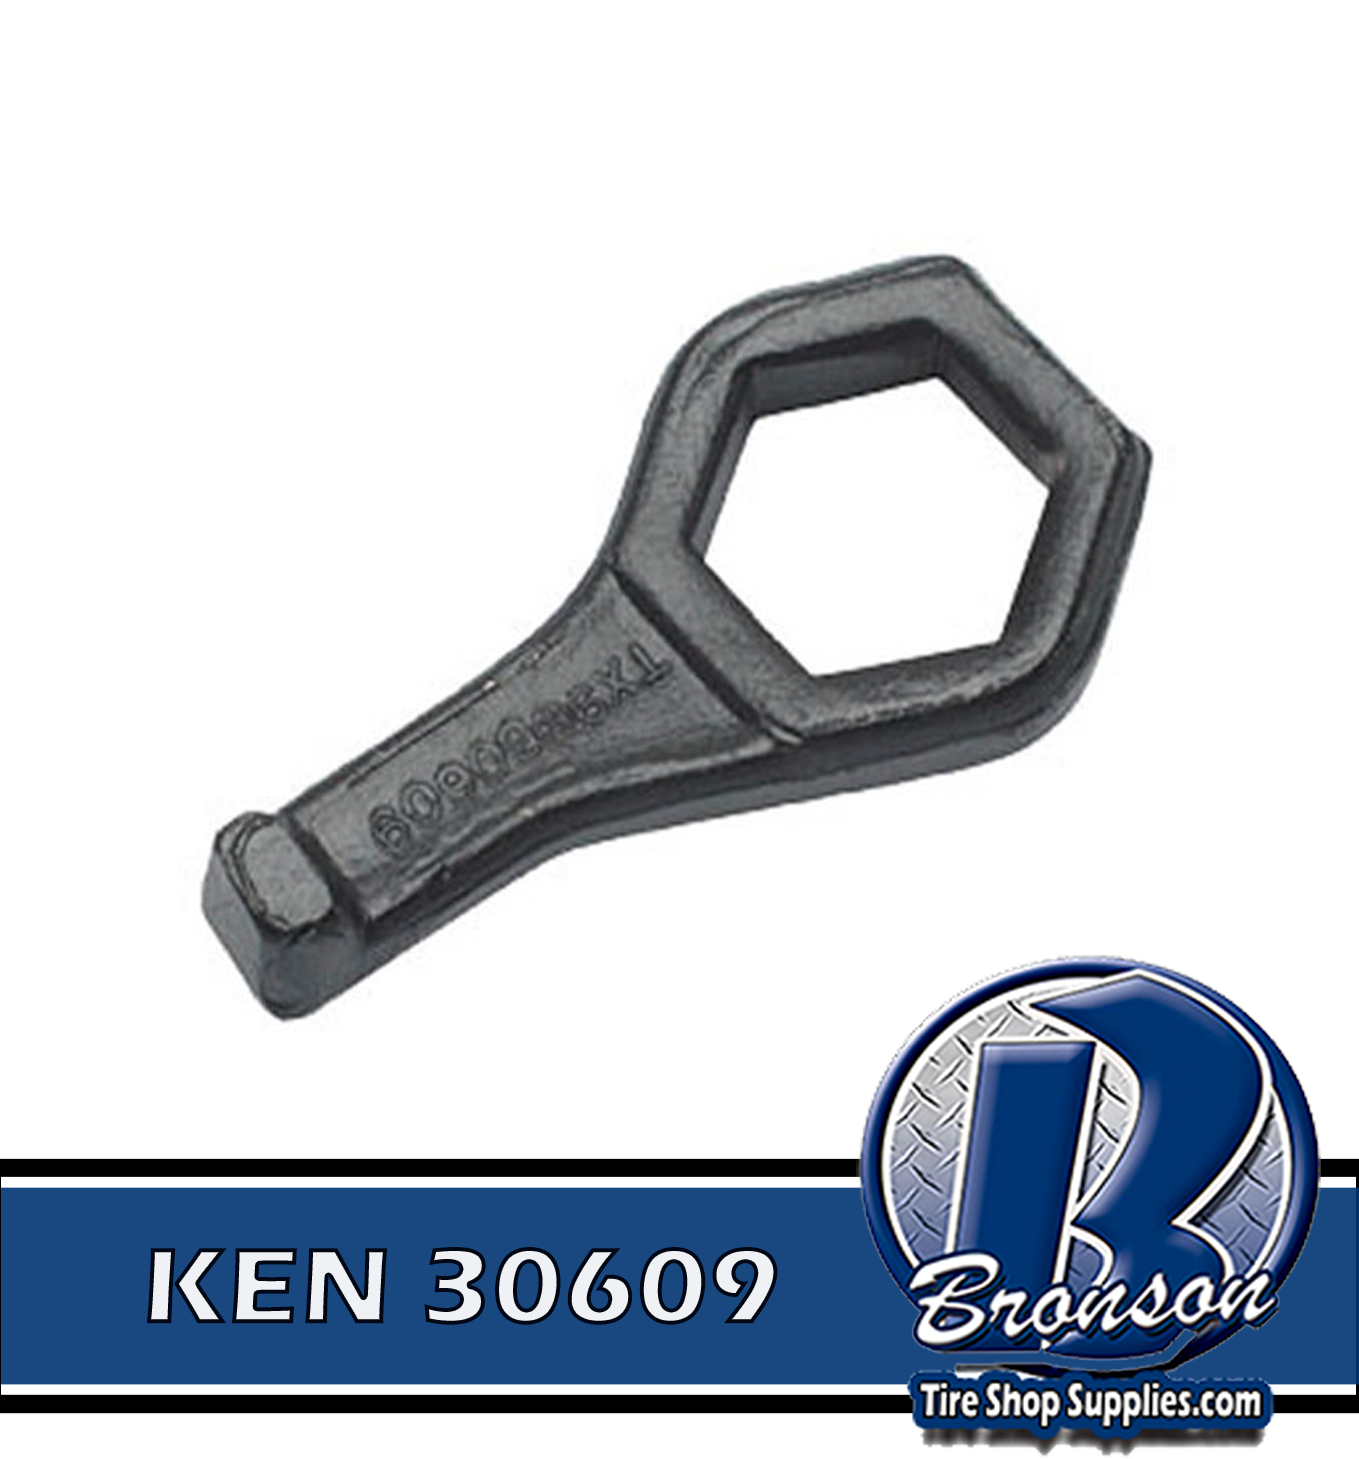 KEN TOOL Tire Shop Supplies Shop tools wheel adapters and more